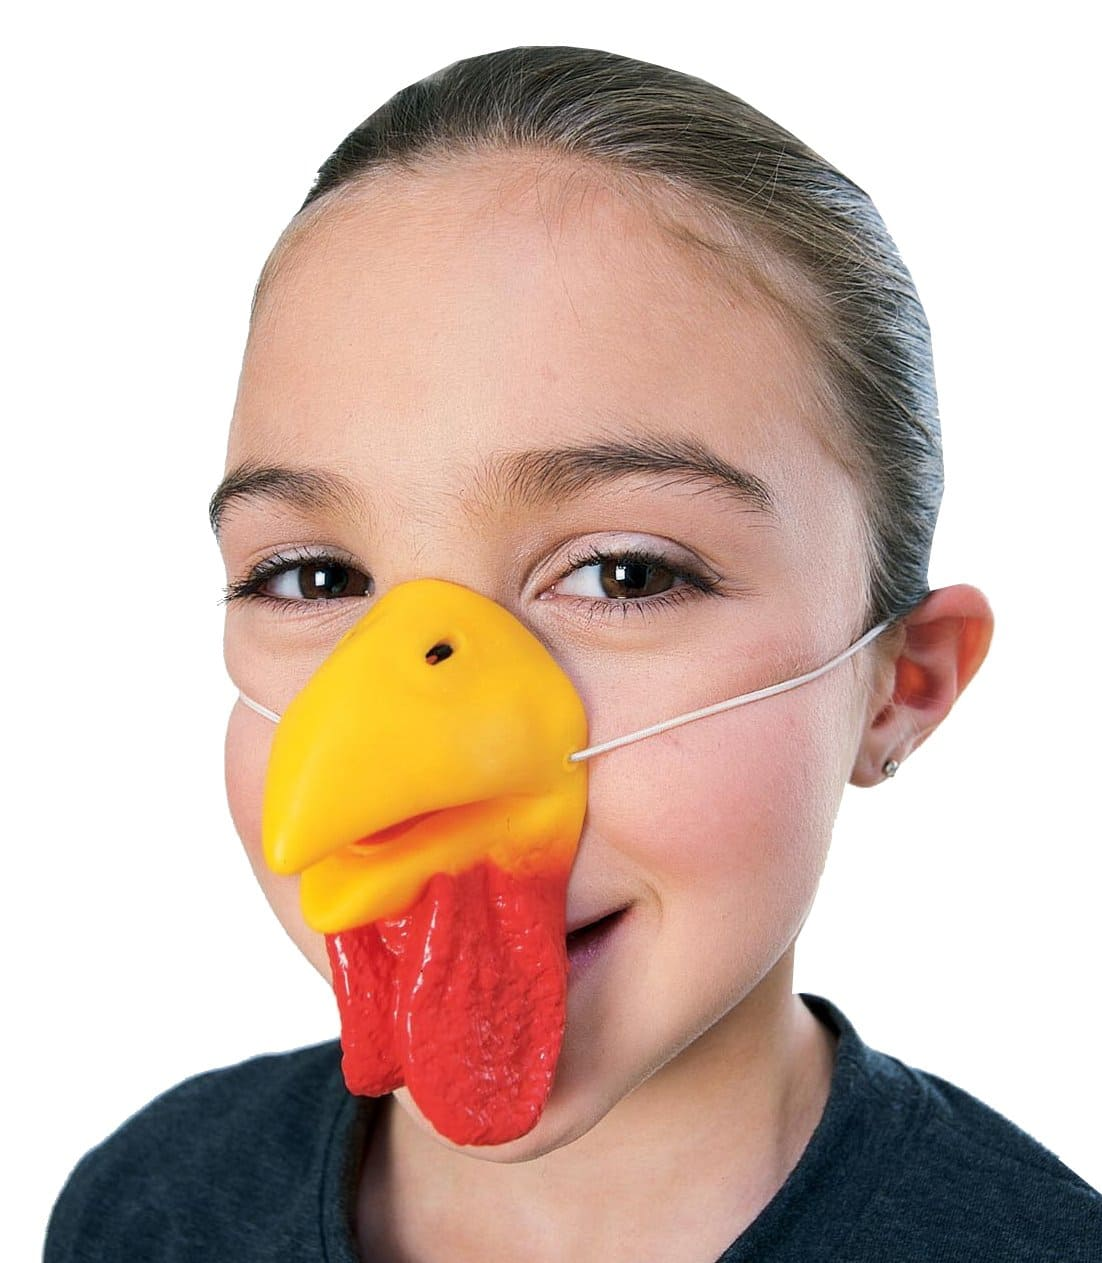 Rubie's Costume Company Rooster/Chicken Nose Costume $4.78 + Free shipping w/ Prime or $25+